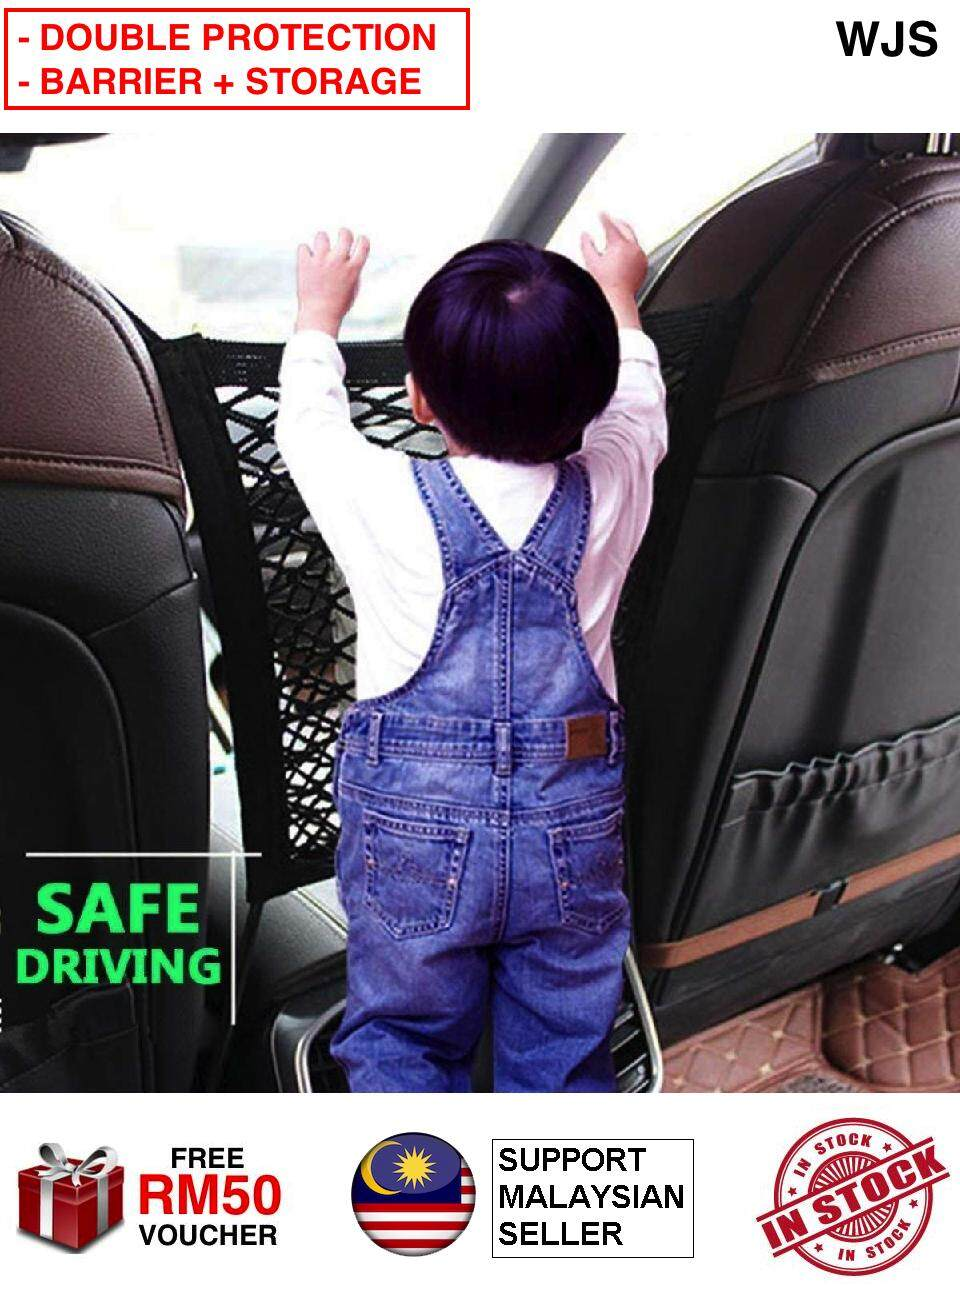 (DOUBLE PROTECTION) WJS Universal Car Side Seat Storage Mesh Organizer Mesh Cargo Net Hook Pouch Holder Back Seat Elastic Cargo String Net Pouch Holder for Bag Luggage Pets Kids Barrier Disturb Stopper BLACK [FREE RM 50 VOUCHER]